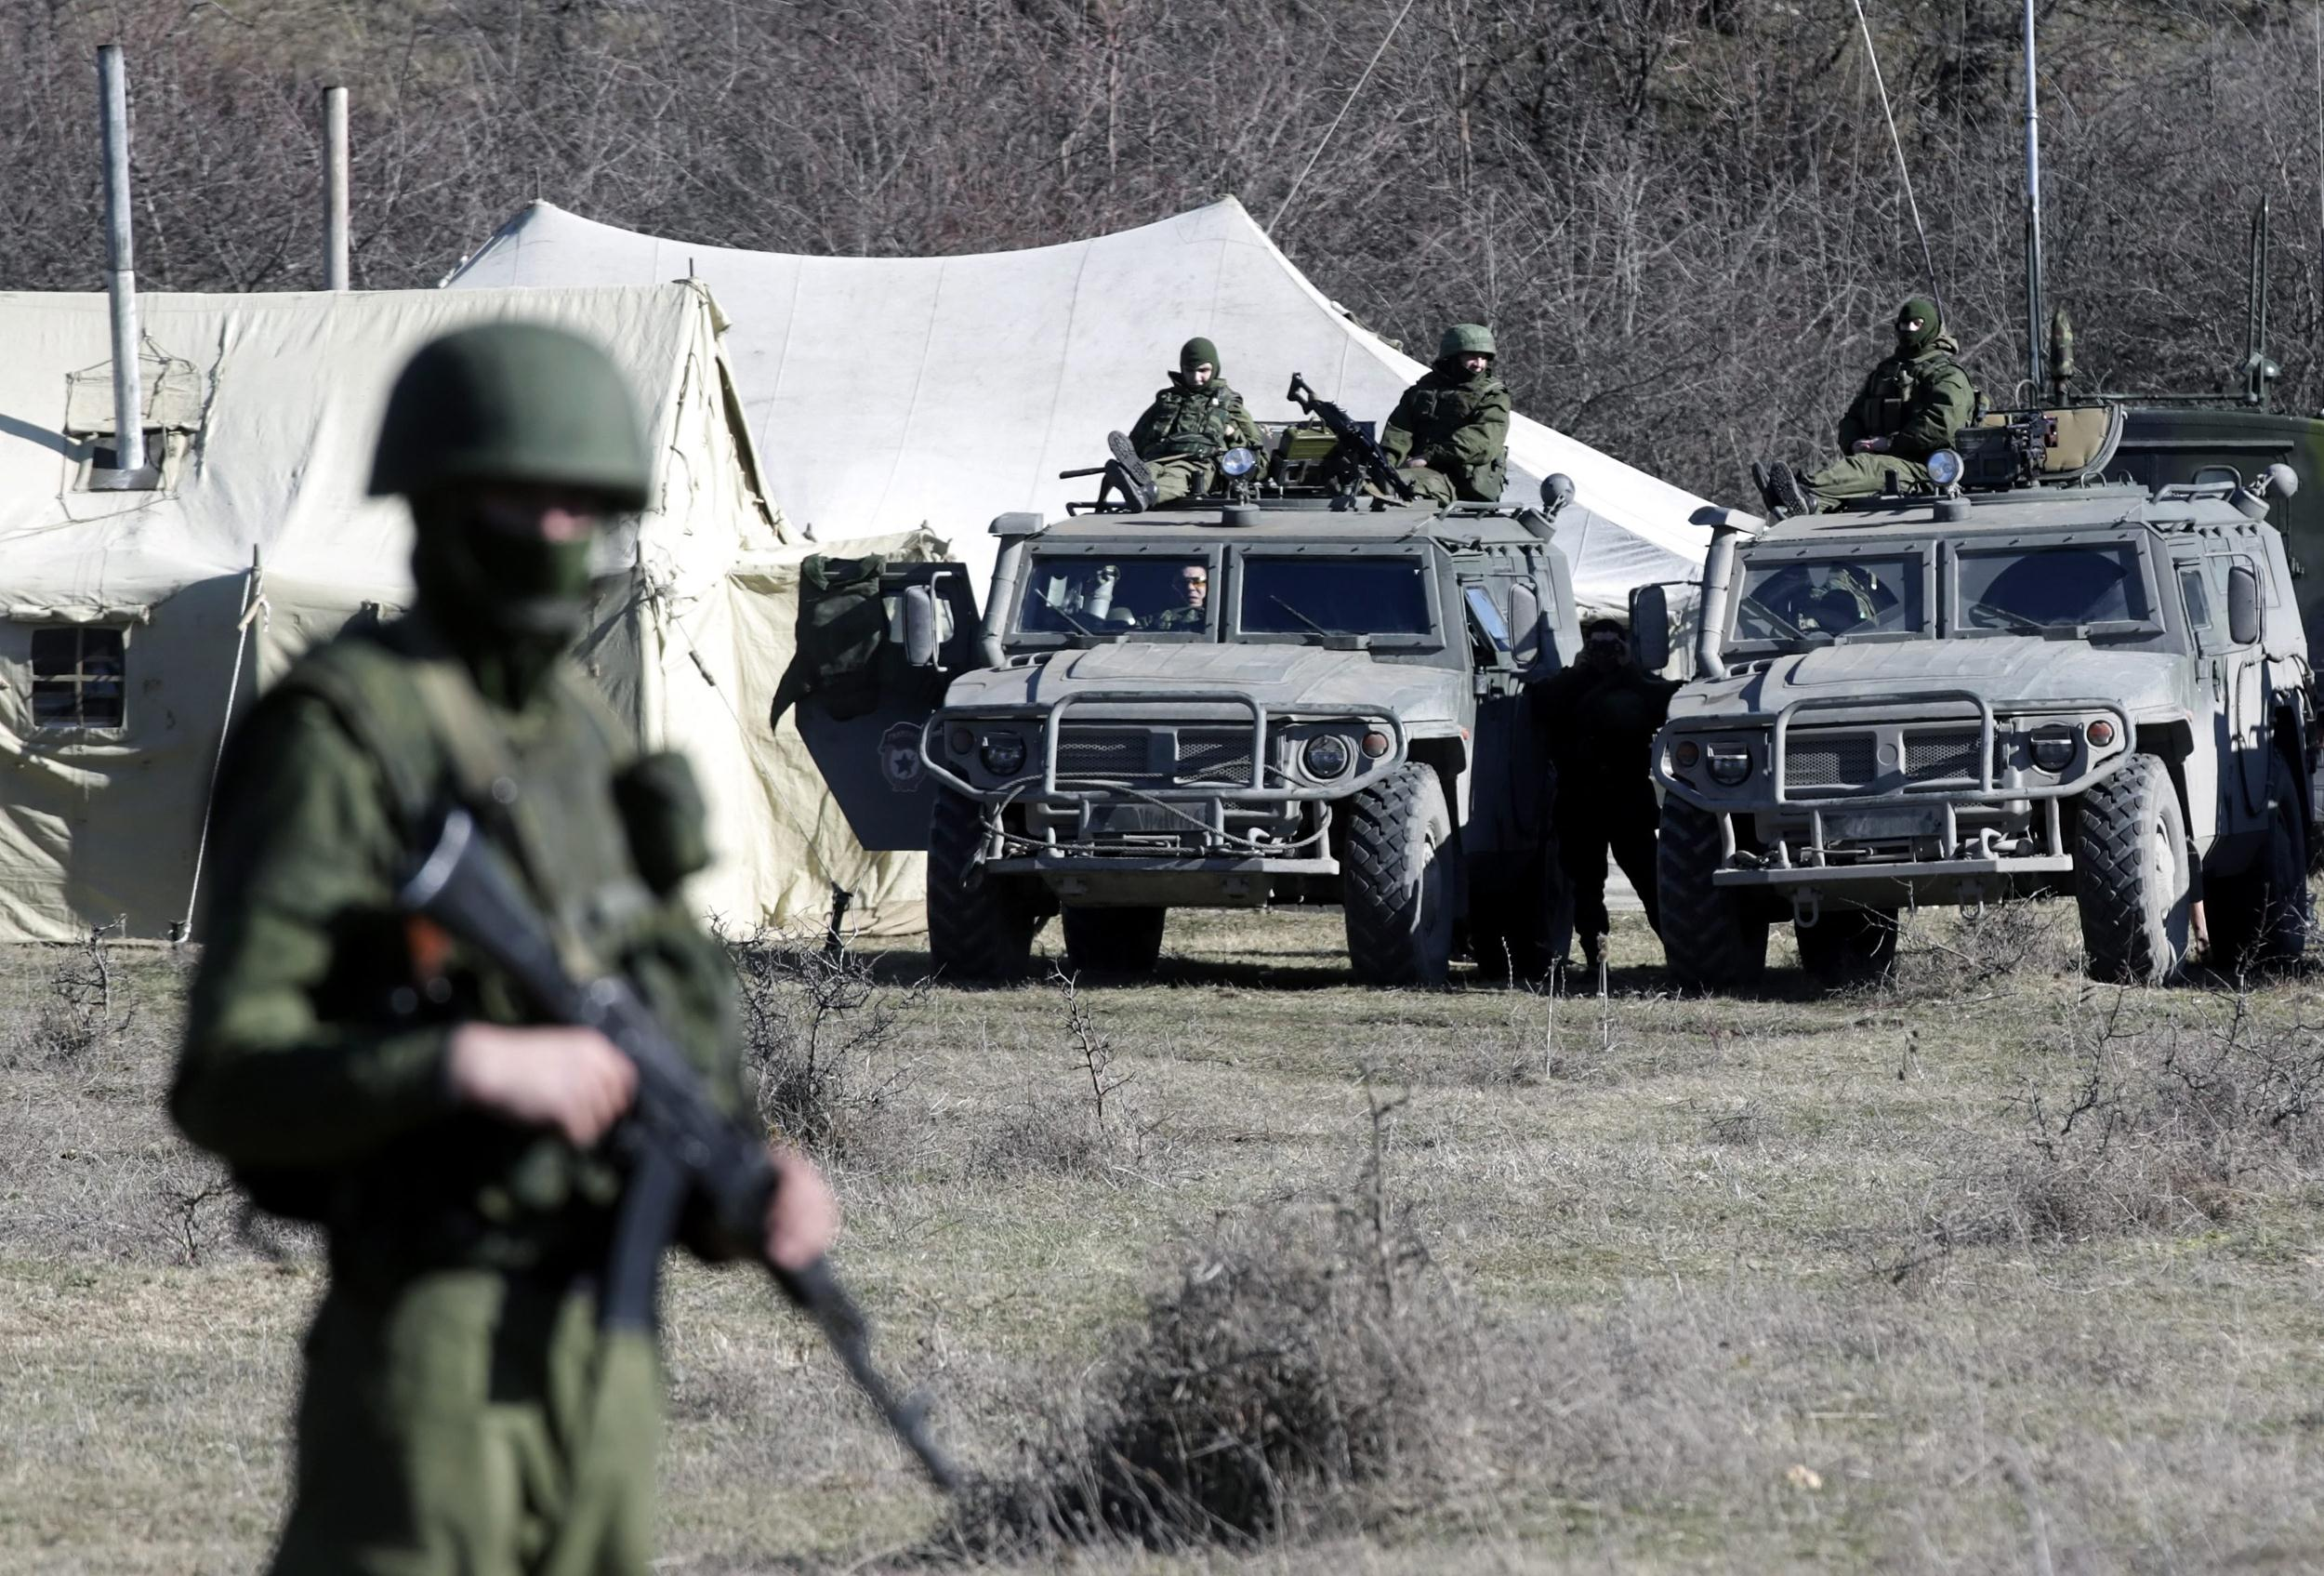 Image: An armed men in military uniform, believed to be Russian, and military vehicles stand outside the territory of a Ukrainian military unit in the village of Perevalnoye